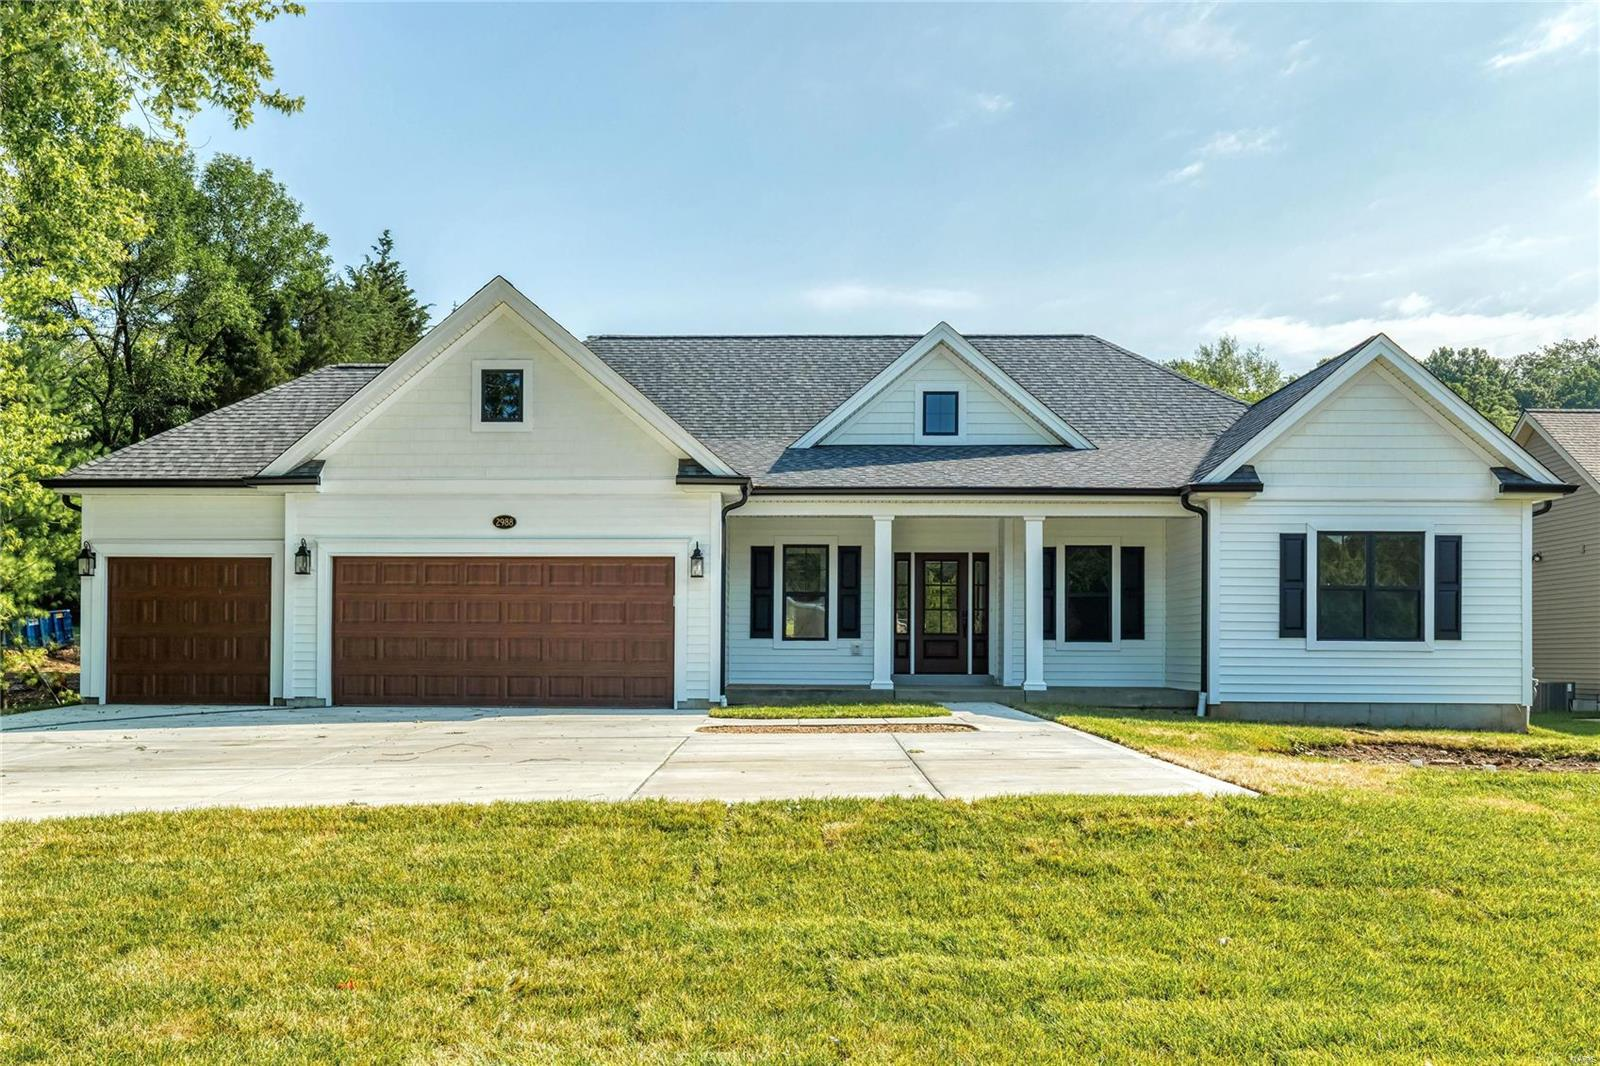 2950 Ozark Drive Property Photo - Unincorporated, MO real estate listing